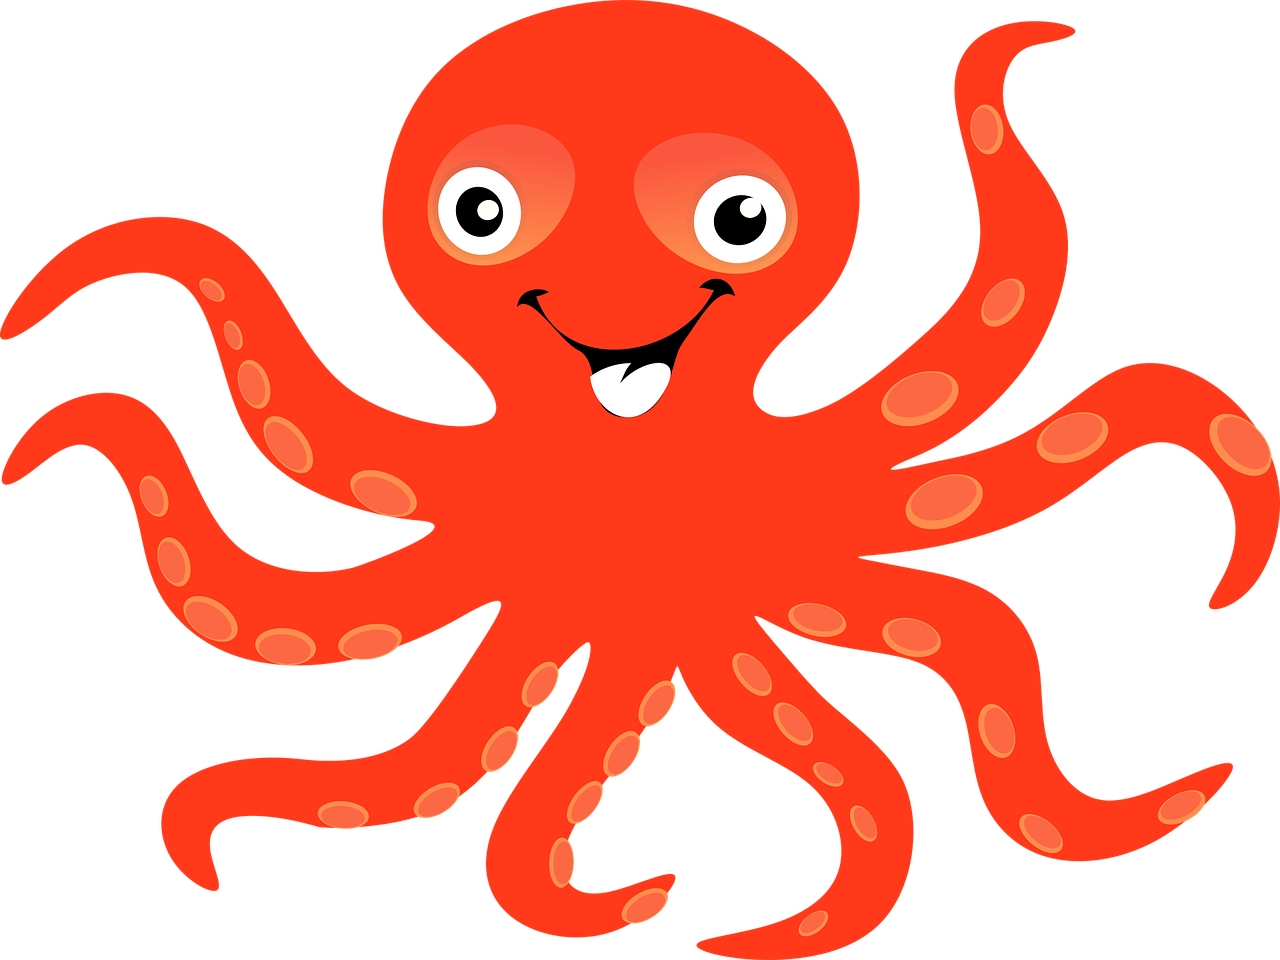 silver-octopus-2312413_1280.png